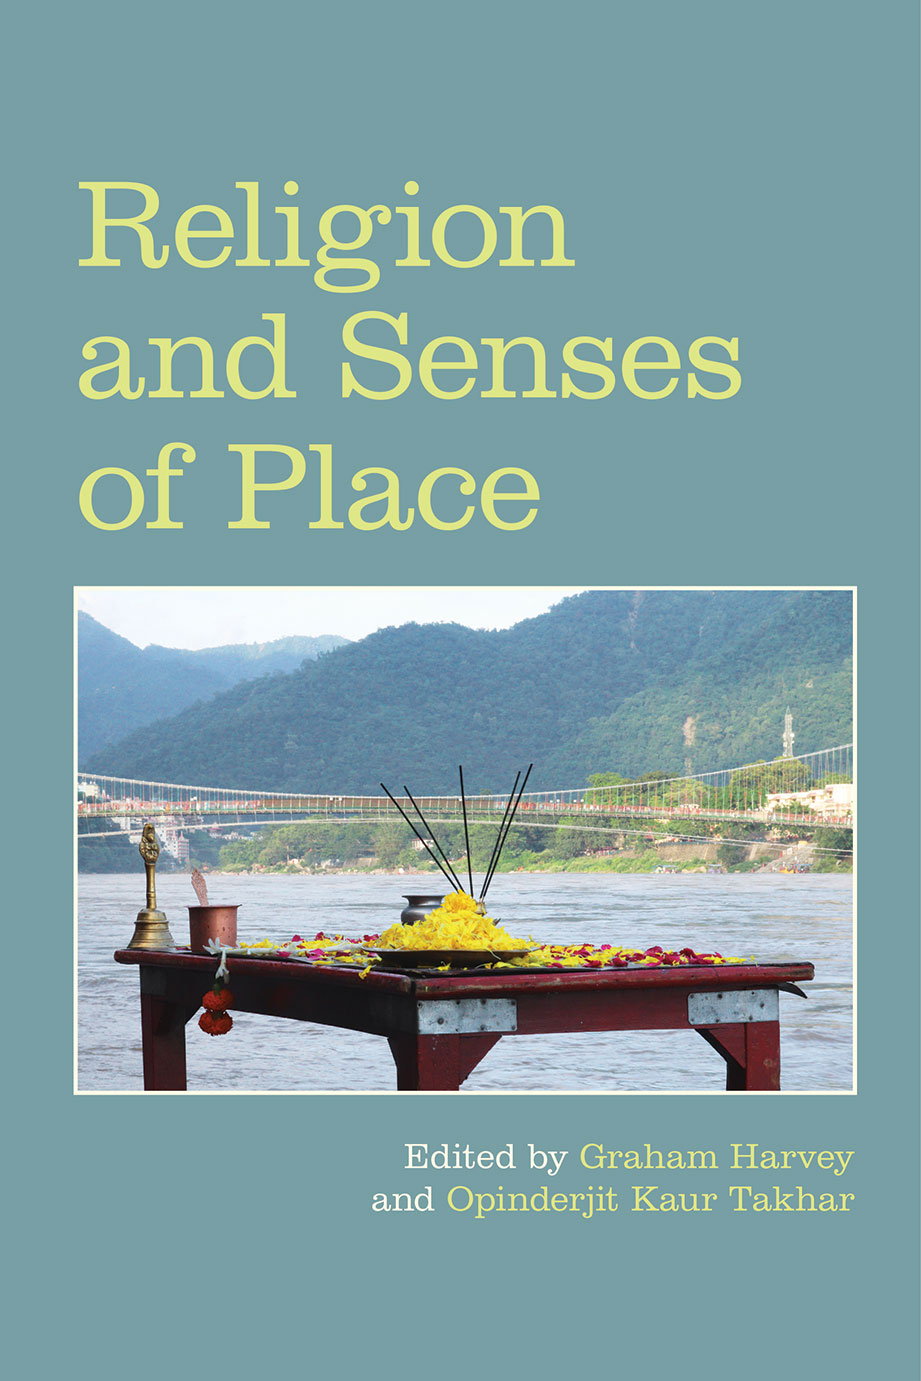 Religion and Senses of Place - Graham Harvey